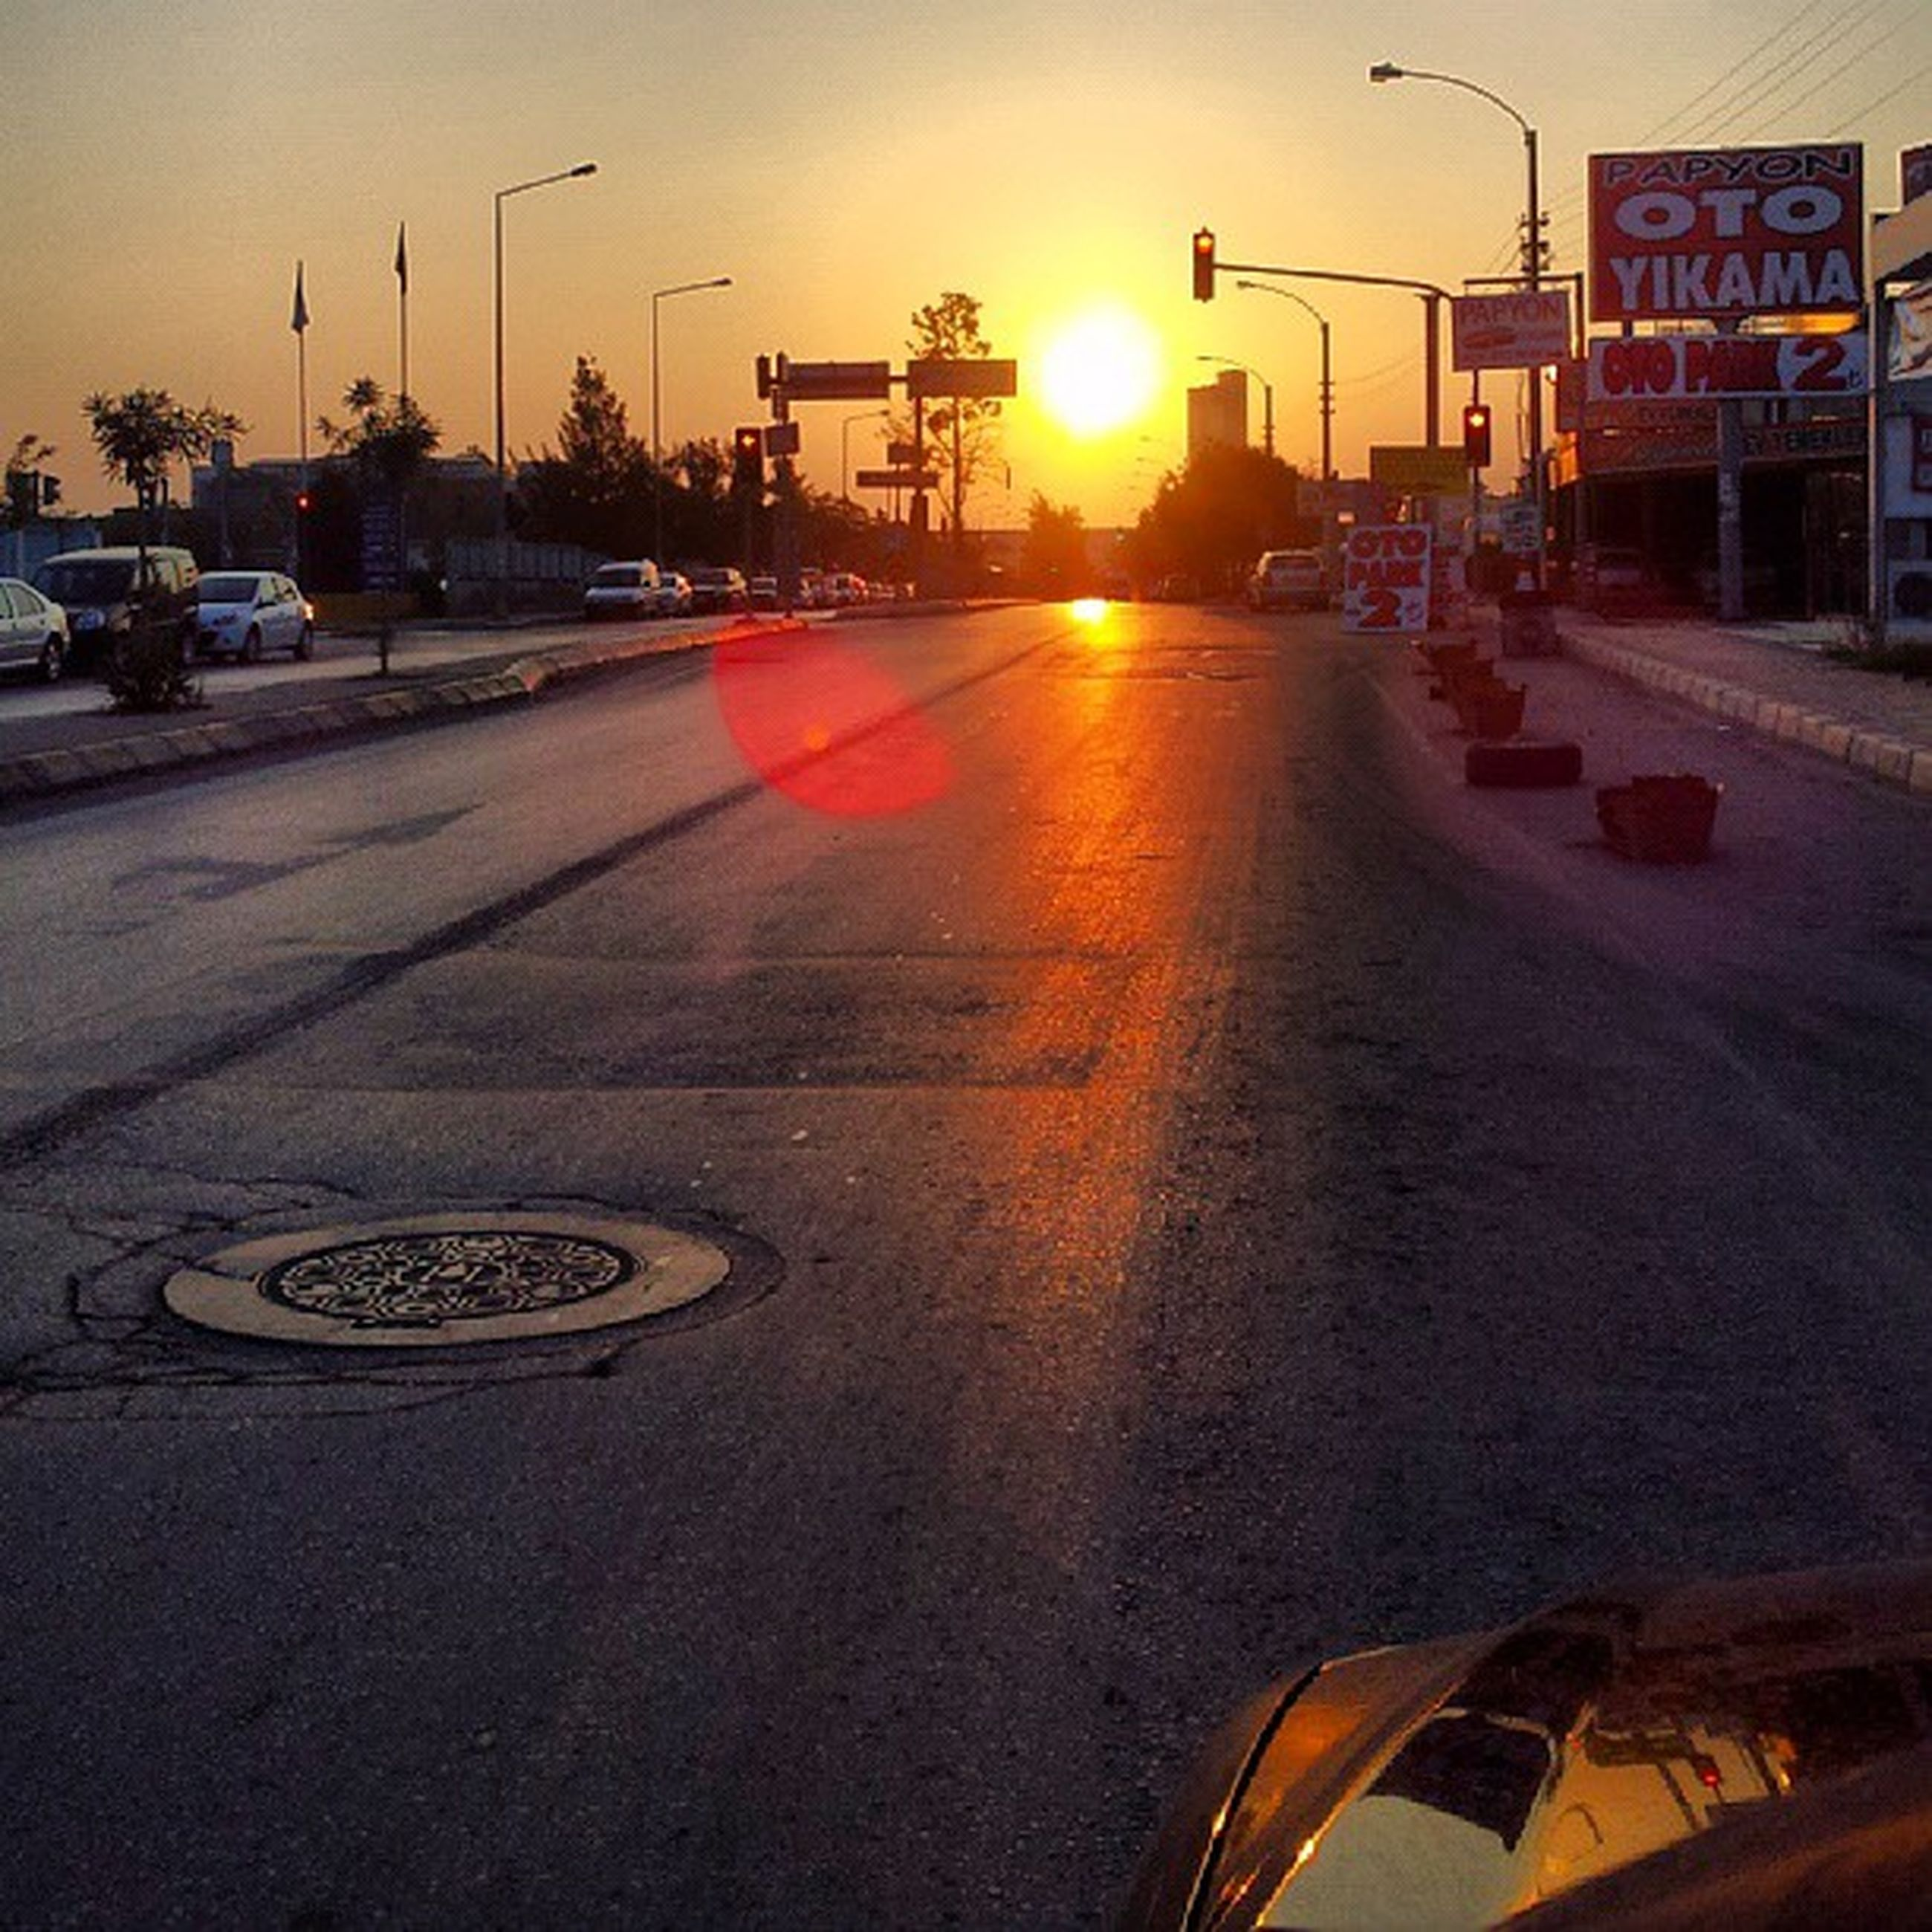 transportation, car, land vehicle, mode of transport, street, road, sunset, city, road marking, building exterior, traffic, city street, the way forward, sun, street light, built structure, architecture, sky, city life, travel